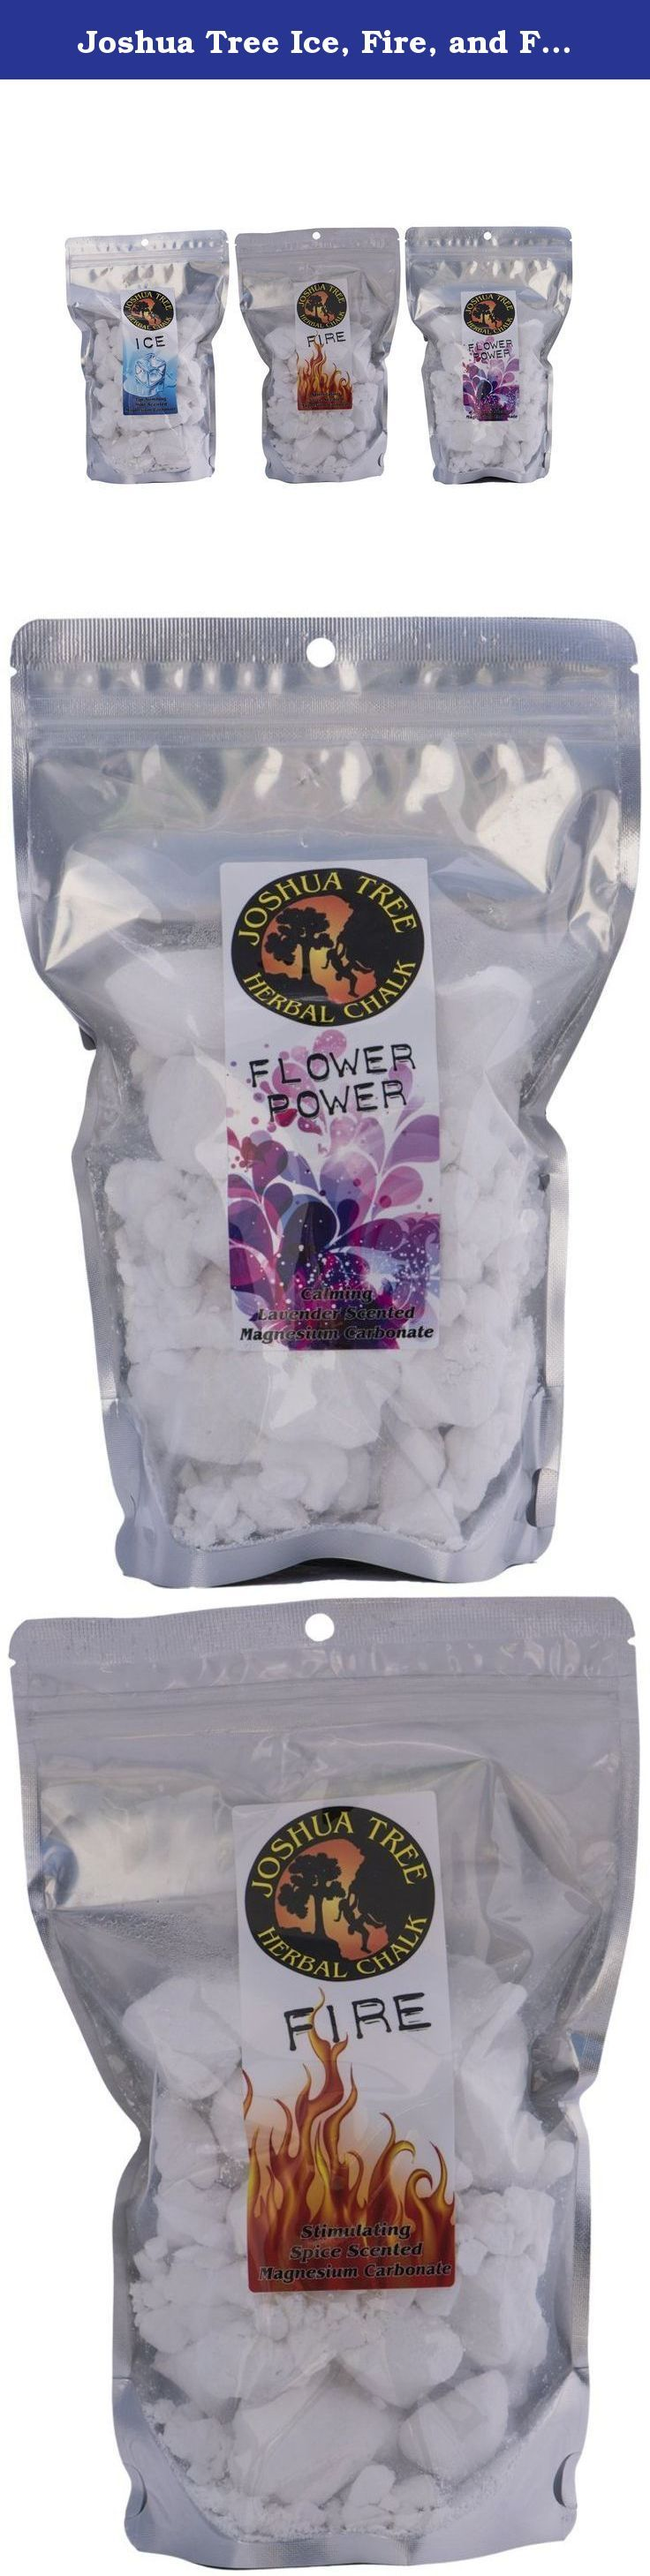 Joshua Tree Ice, Fire, and Flower Power Herbal Chalk Bundle with Magnesium Carbonate, and Organic Extracts, 8 fl. oz. each. Ice: Chalk is going to dry out your hands. That's it job, right? Well, minimize the harsh effects of the chalk while stimulating the mind with our Herbal Chalks. These ultra grind chalks have the friction to get you through the crux, with an added kick to put your mind back in the action. Get a little bit of encouragement, right in your chalk bag! Fire: Calm your…